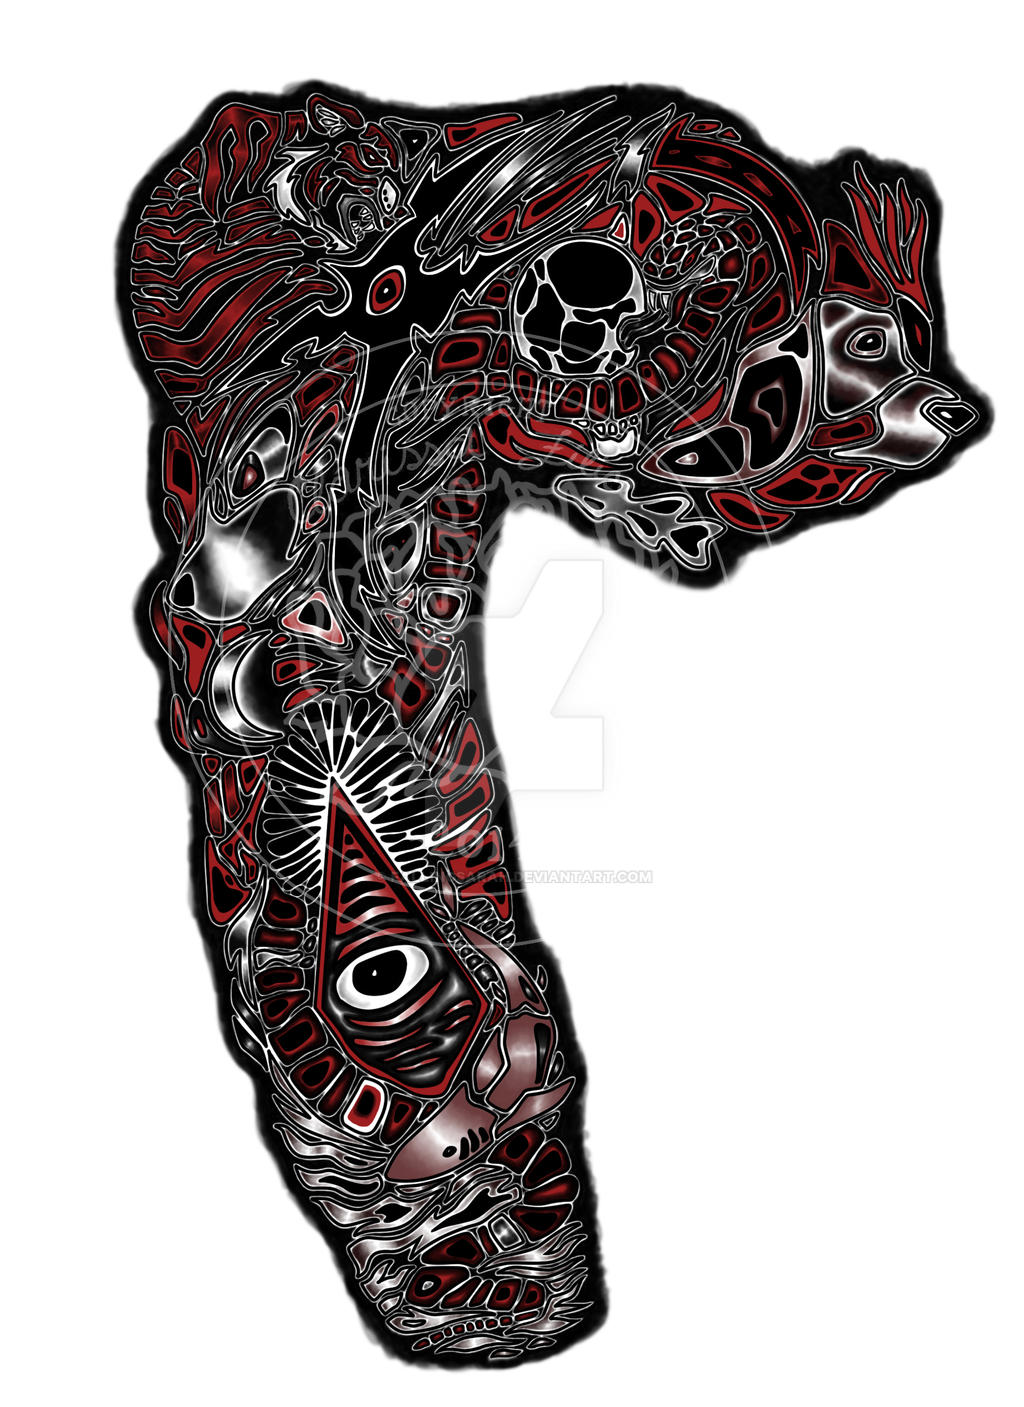 Custom tattoo design menagerie by fallingsarah on deviantart for Full custom tattoo